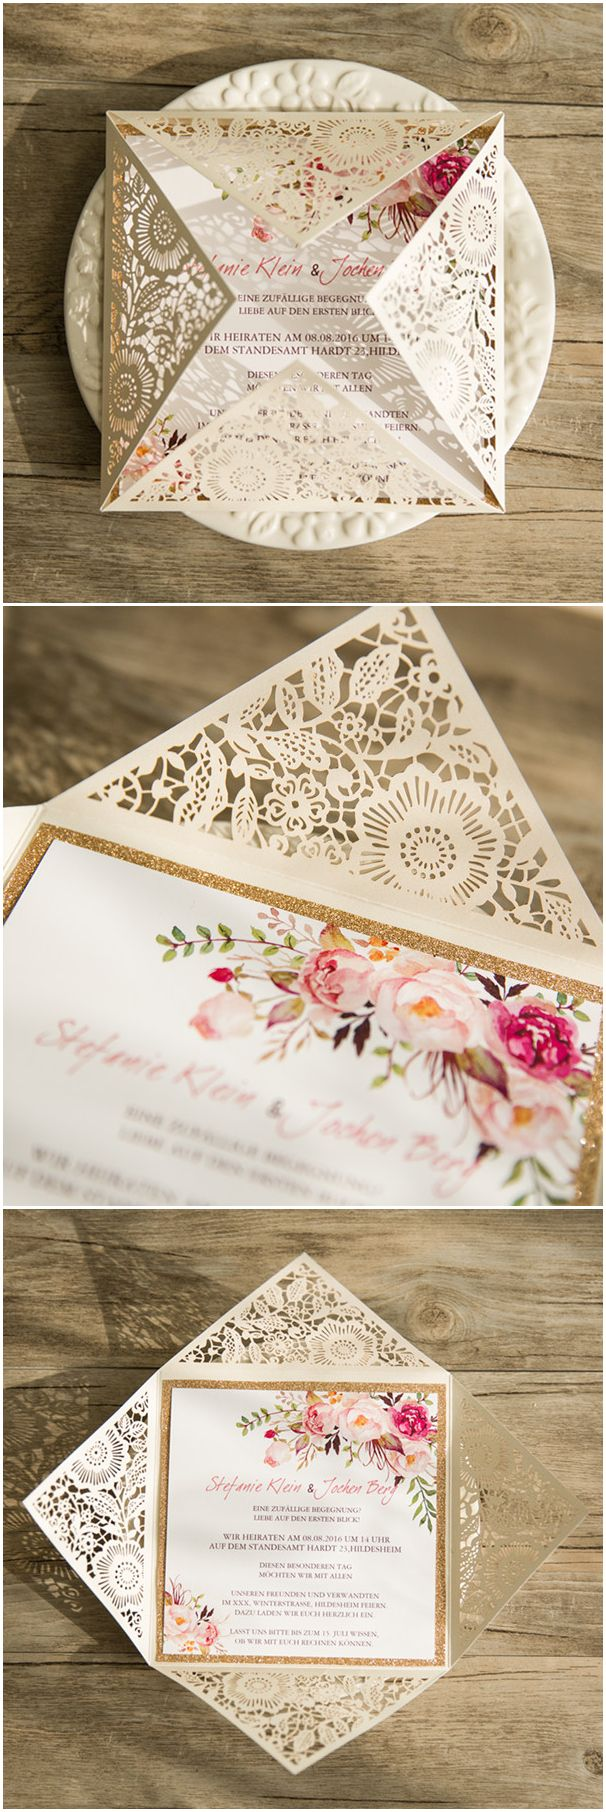 17 Best ideas about Wedding Cards – Wedding Card Invitations